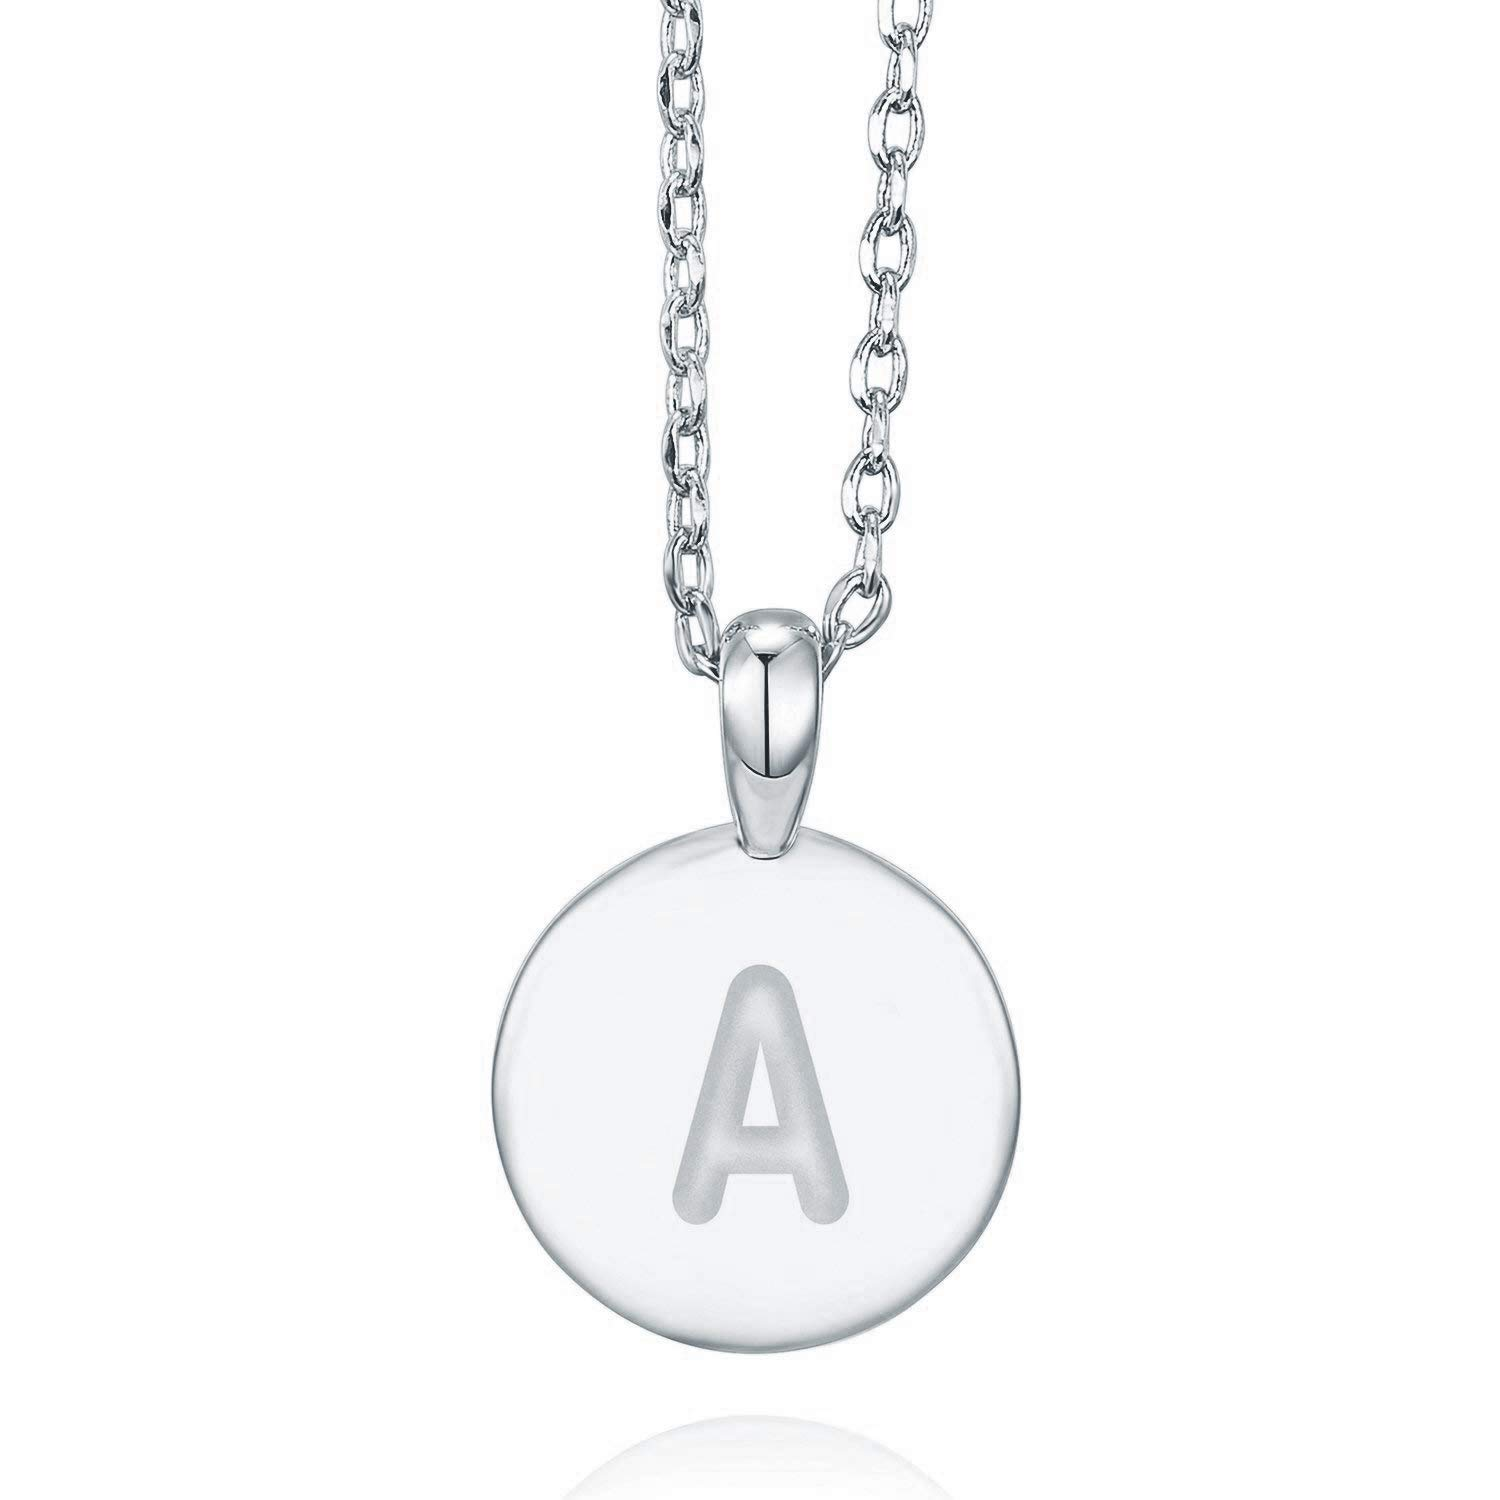 aa51c7631ee PAVOI 14K White Gold Plated Letter Necklace for Women | Gold Initial  Necklace for Girls